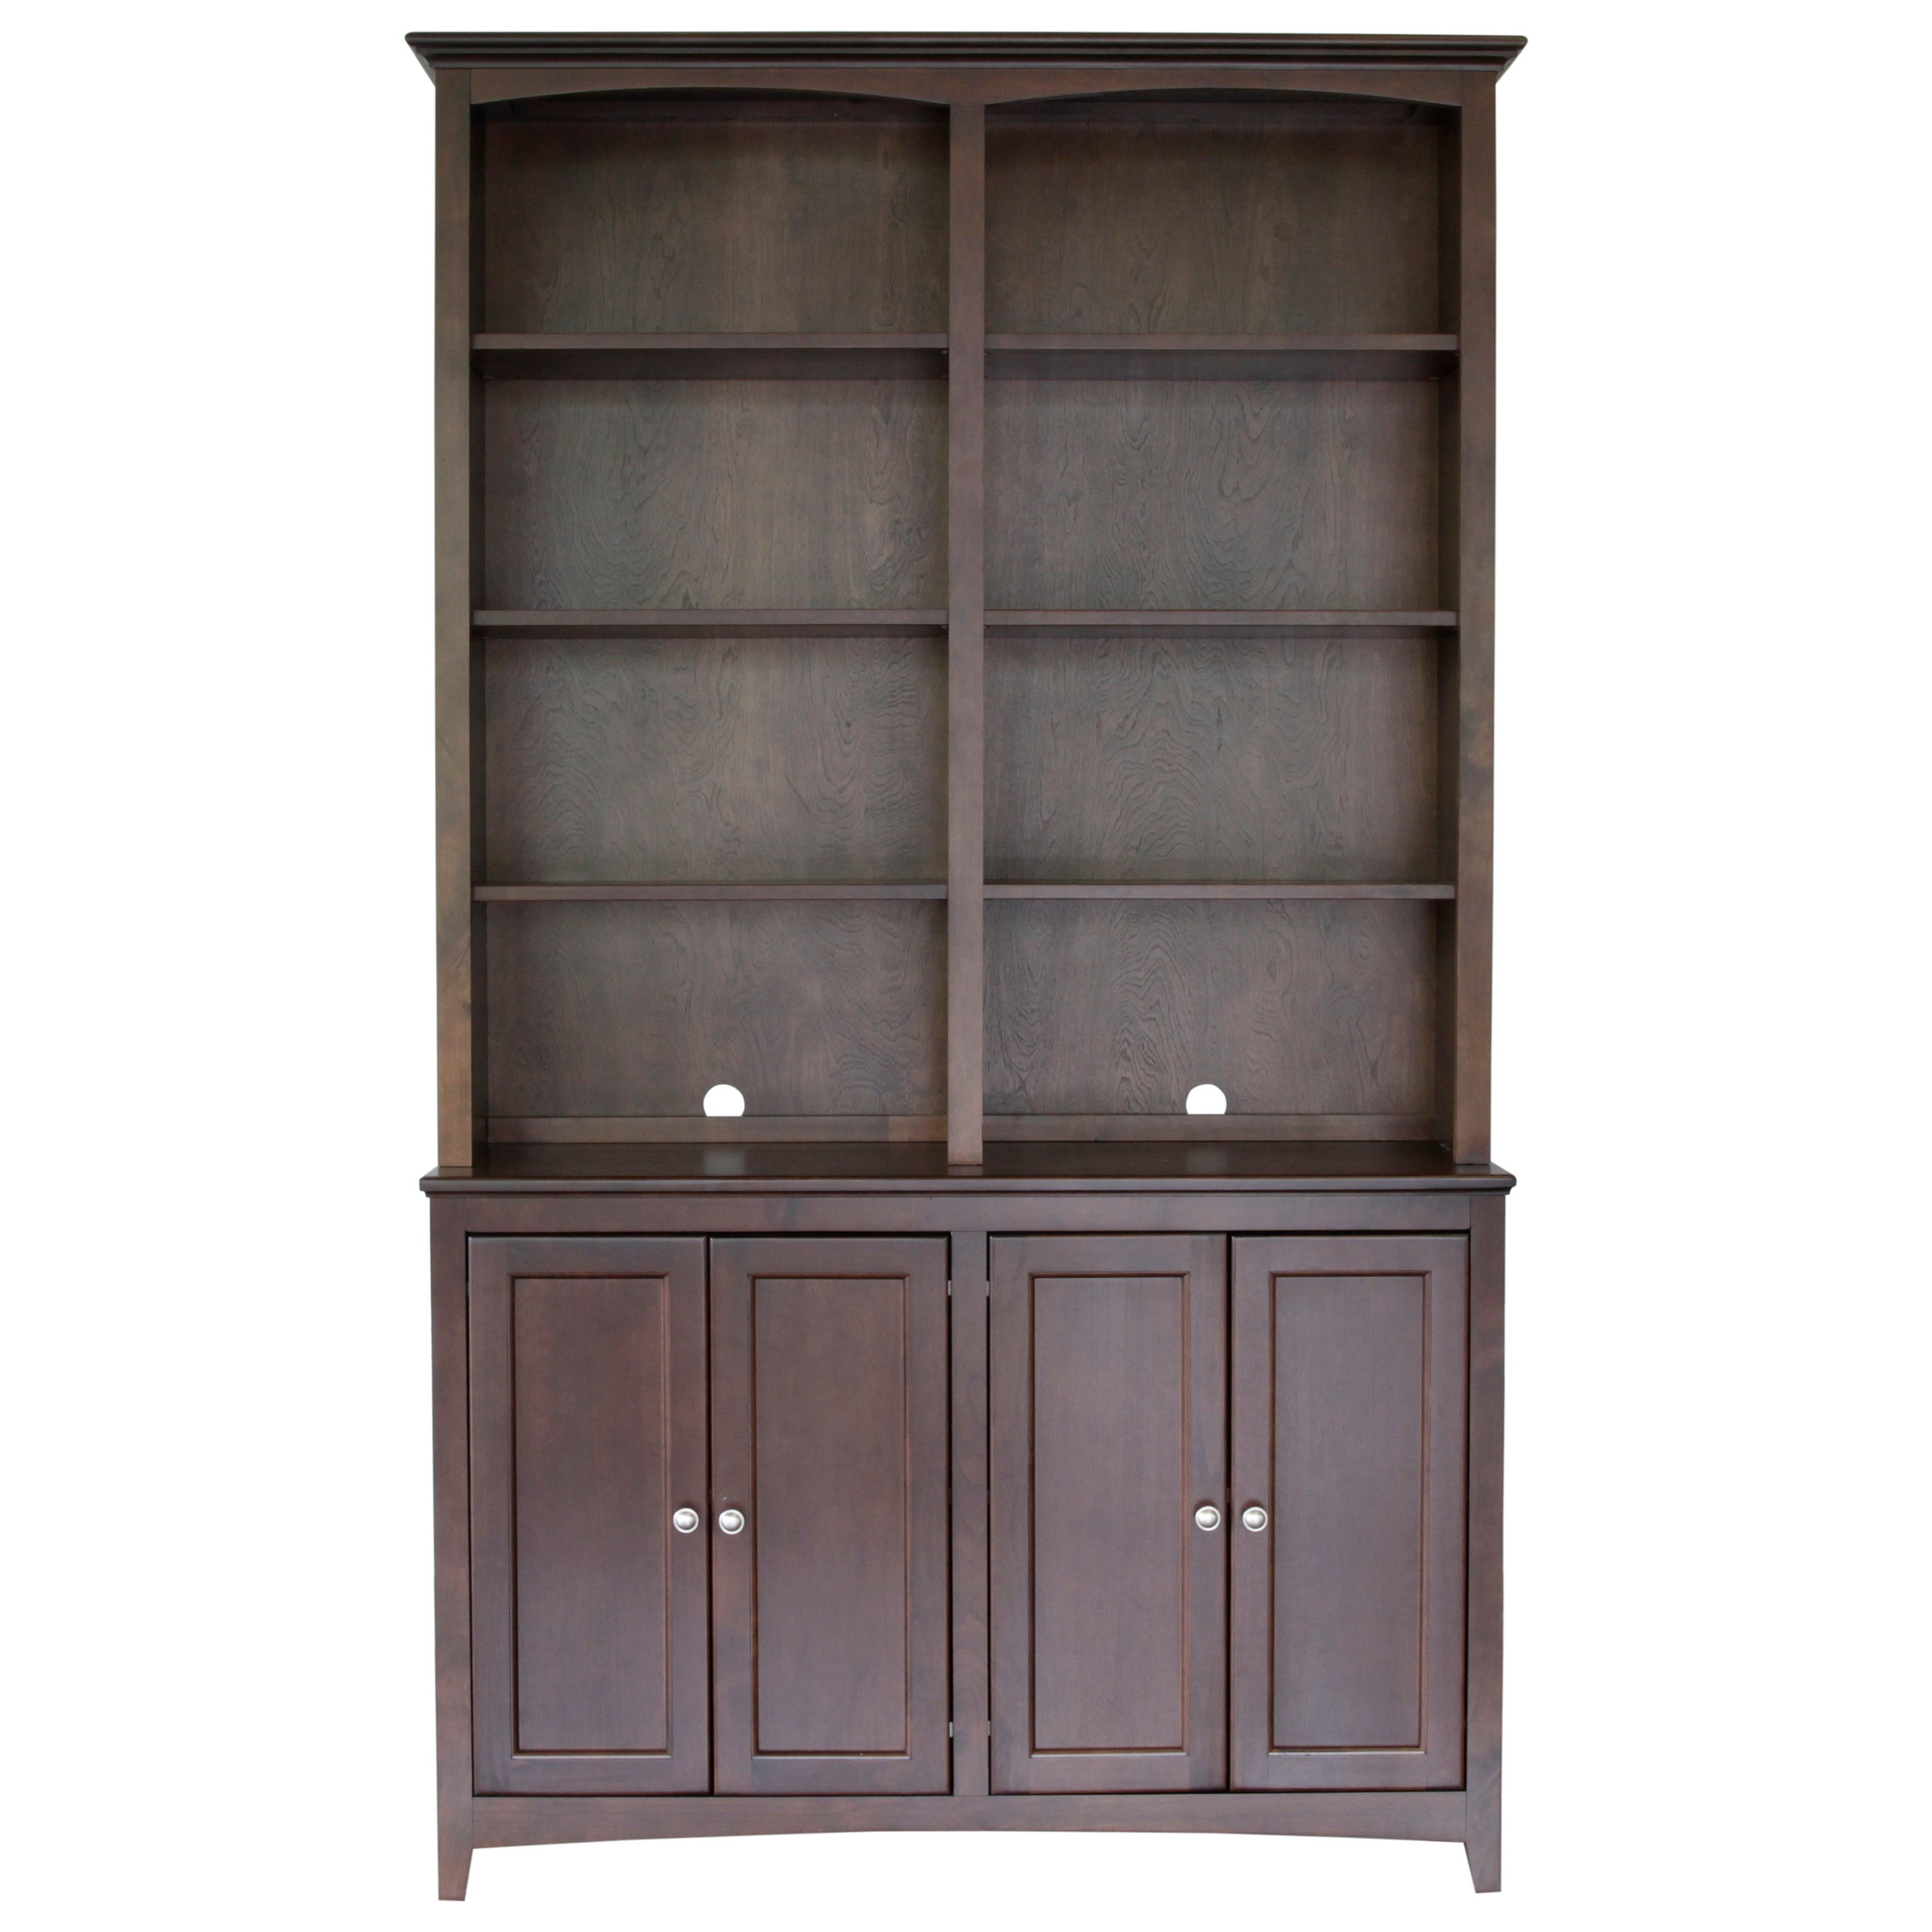 "McKenzie 48"" Cabinet and Hutch by Whittier Wood at HomeWorld Furniture"